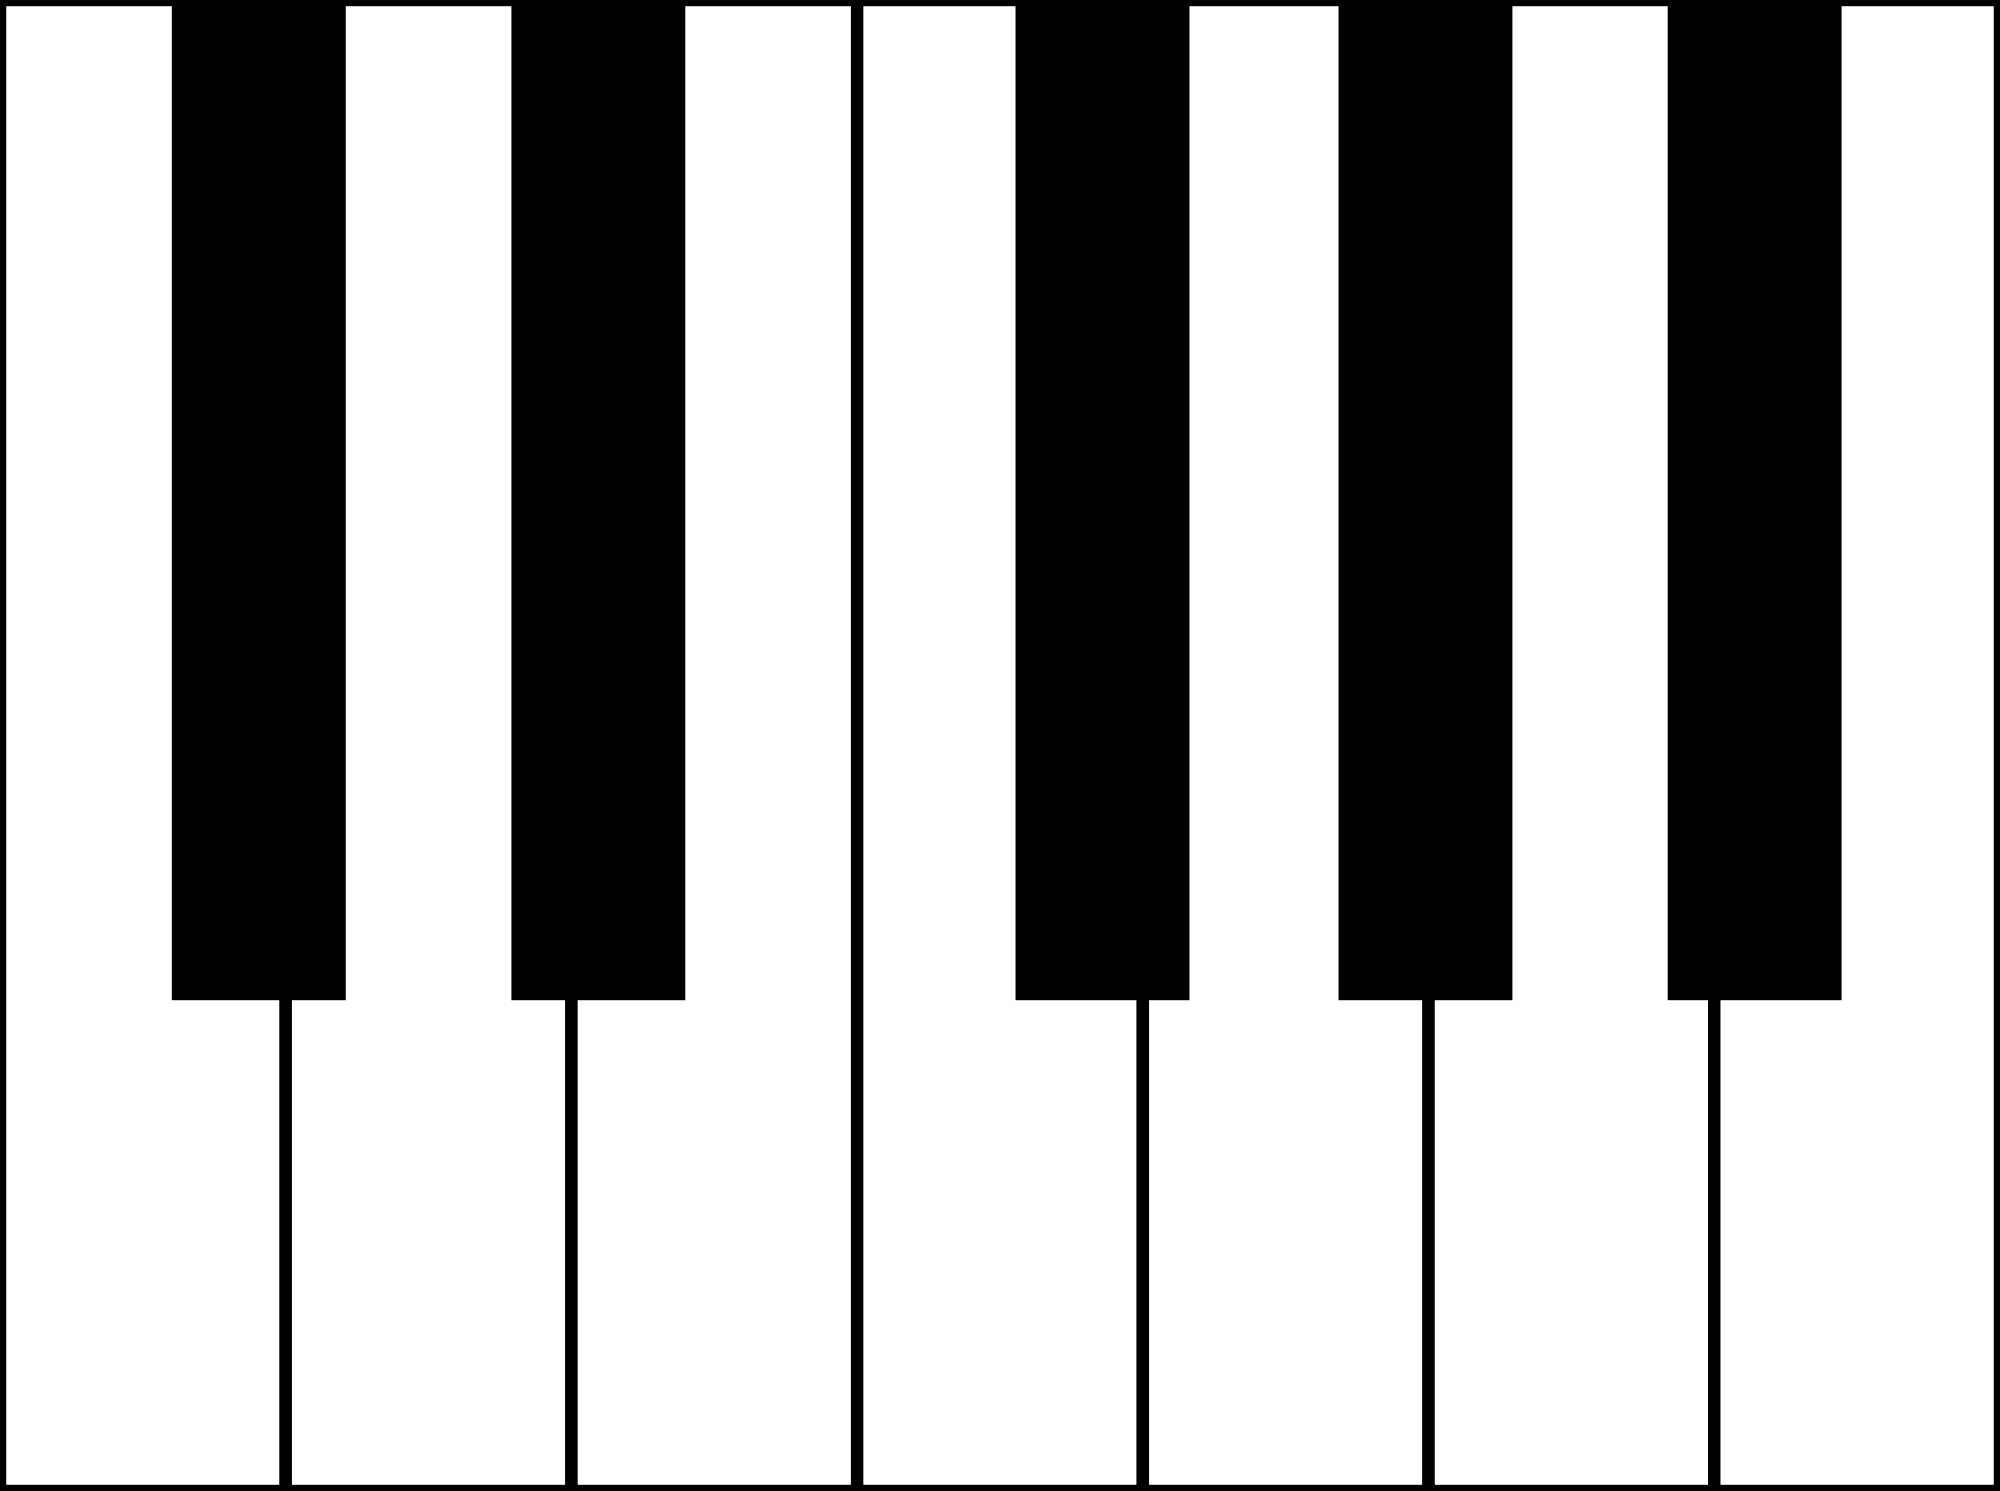 clipart free Free keyboard download clip. Piano key clipart.